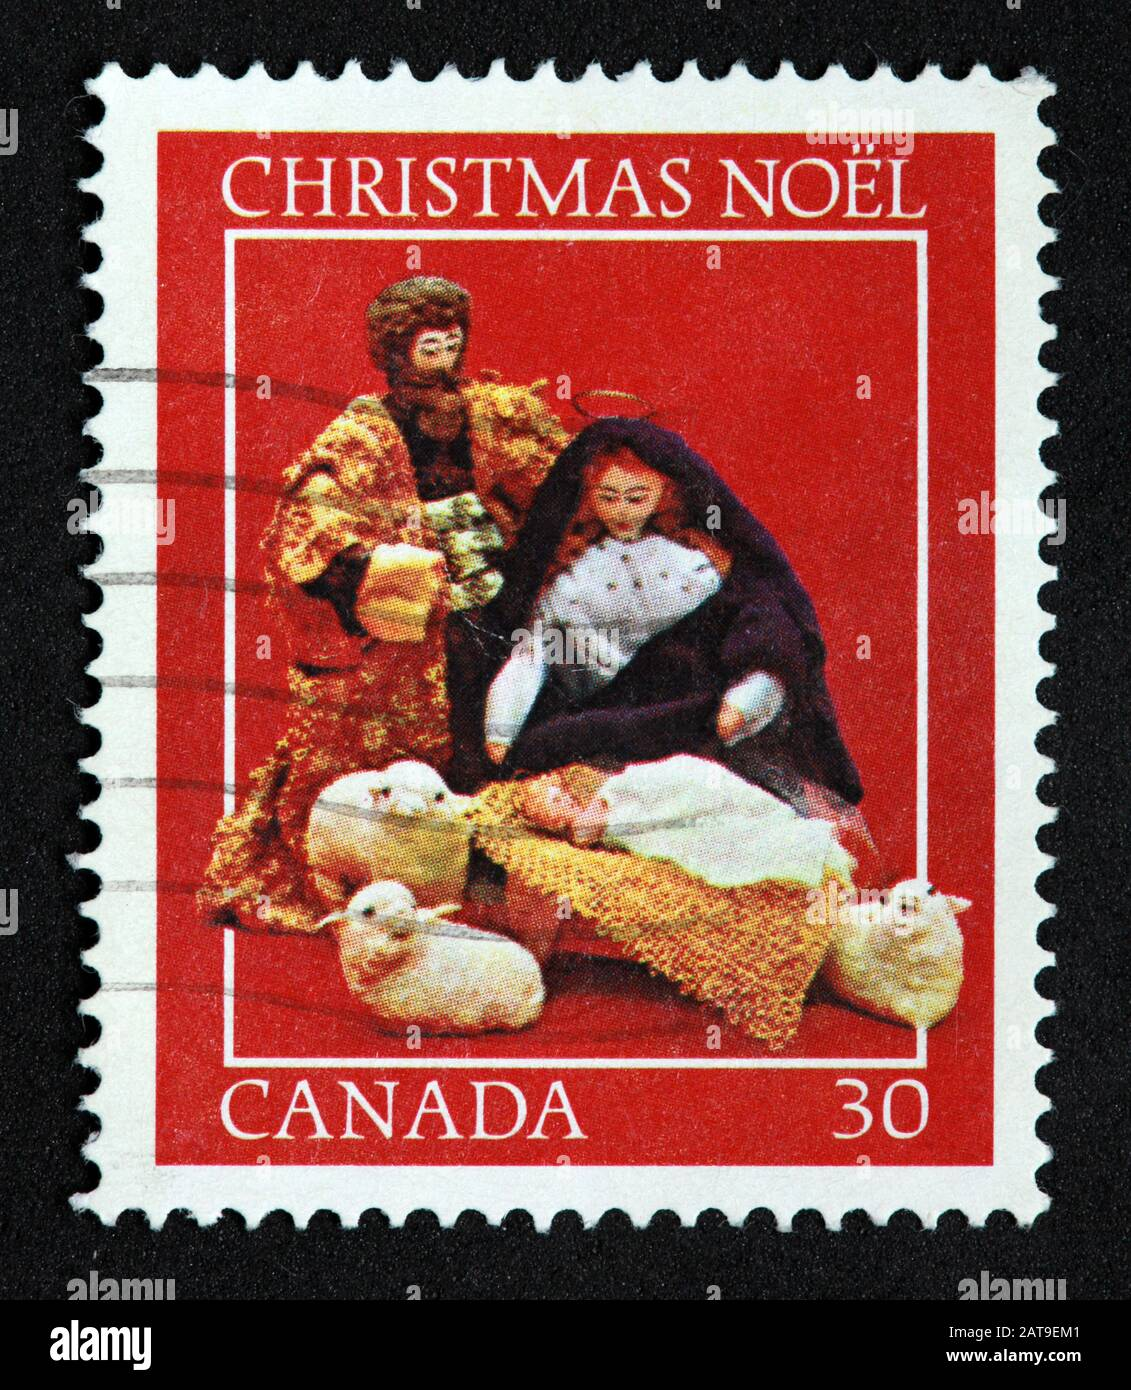 Hotpixuk,@Hotpixuk,GoTonySmith,stamp,postal,franked,frank,used stamps,used franked,used,franked stamp,from envelope,history,historic,old,poste,post office,communications,postage,sending letters,sending,parcels,Christmas Noel,nativity,scene,Canada,30c,30cents,Noel,red,Christmas,Canadian